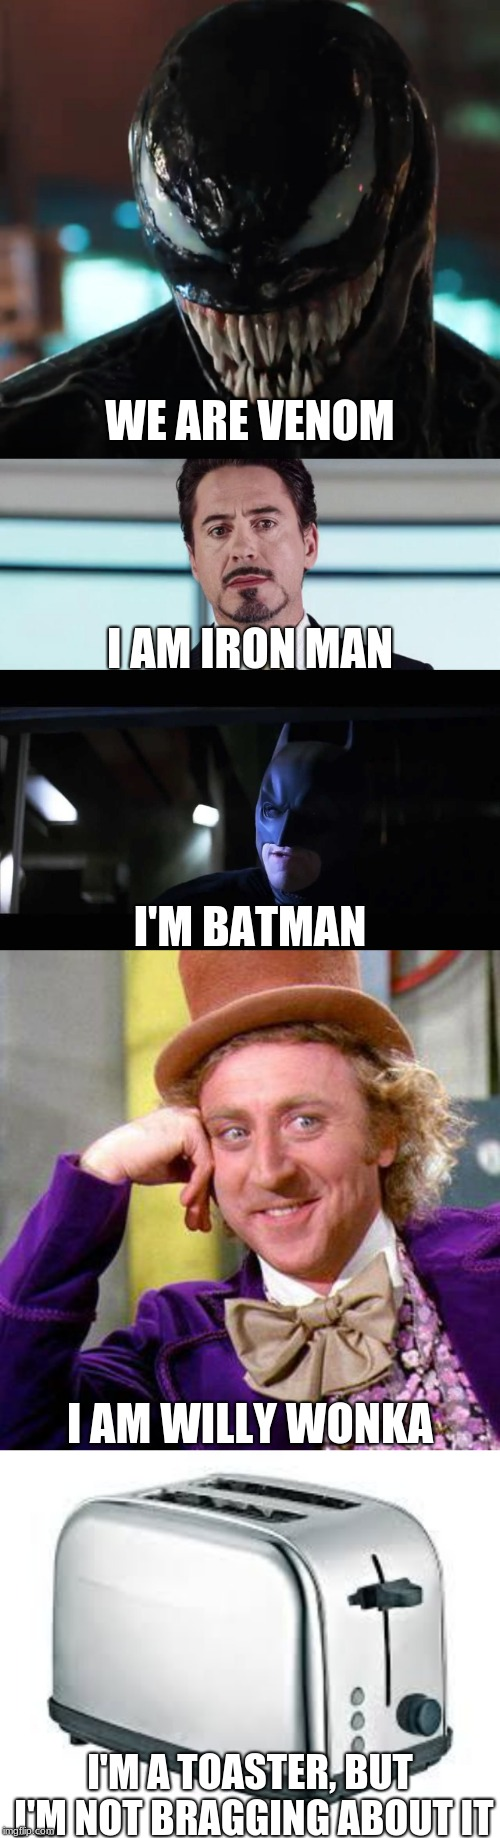 WE ARE VENOM I'M A TOASTER, BUT I'M NOT BRAGGING ABOUT IT I AM IRON MAN I'M BATMAN I AM WILLY WONKA | image tagged in willy wonka blank,toaster,the truth is i am iron man,i am batman,venom | made w/ Imgflip meme maker